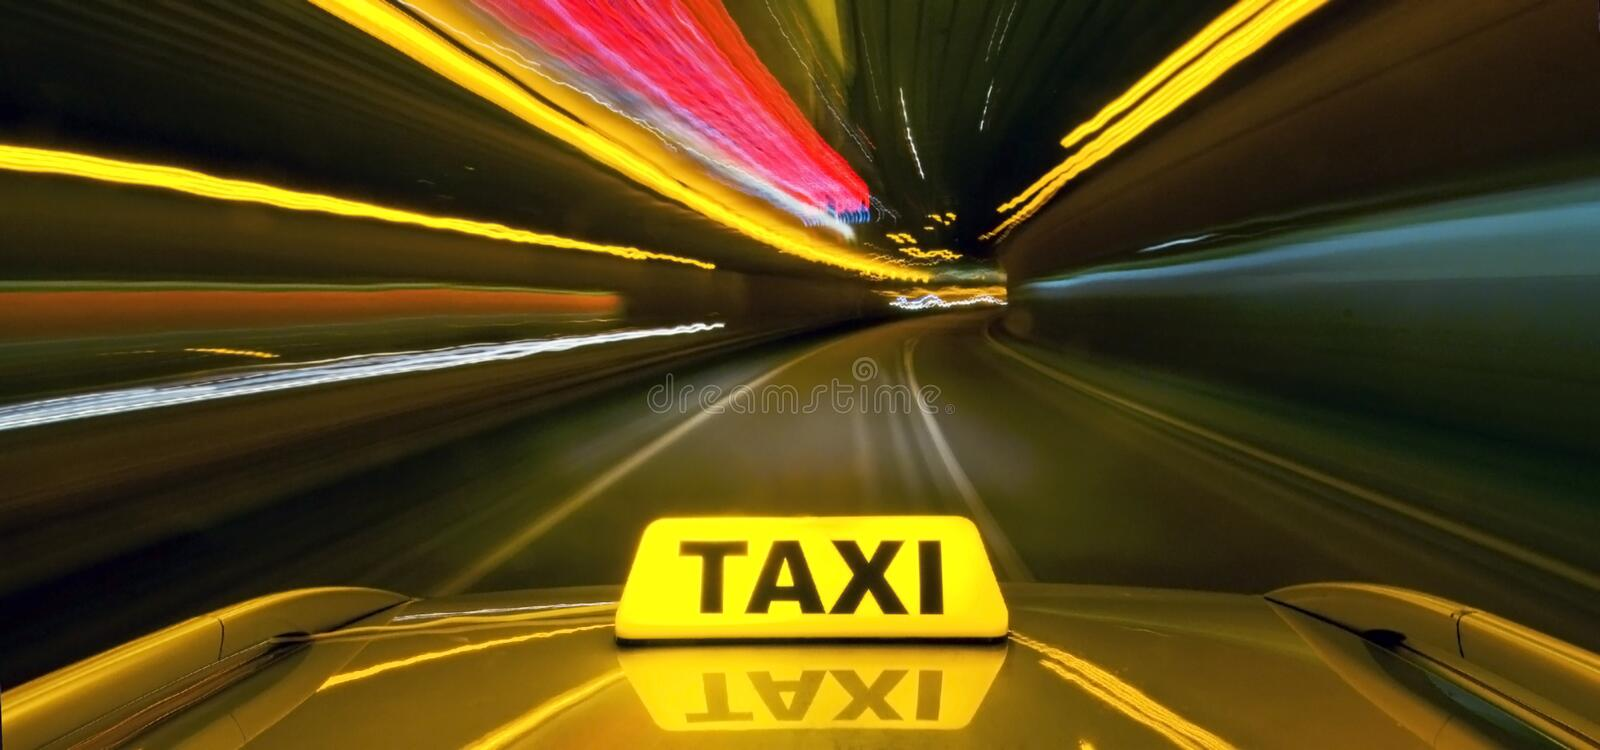 Taxi at warp speed. Taxi driving at high speed through the heavy traffic at night, seen from the roof of the cab